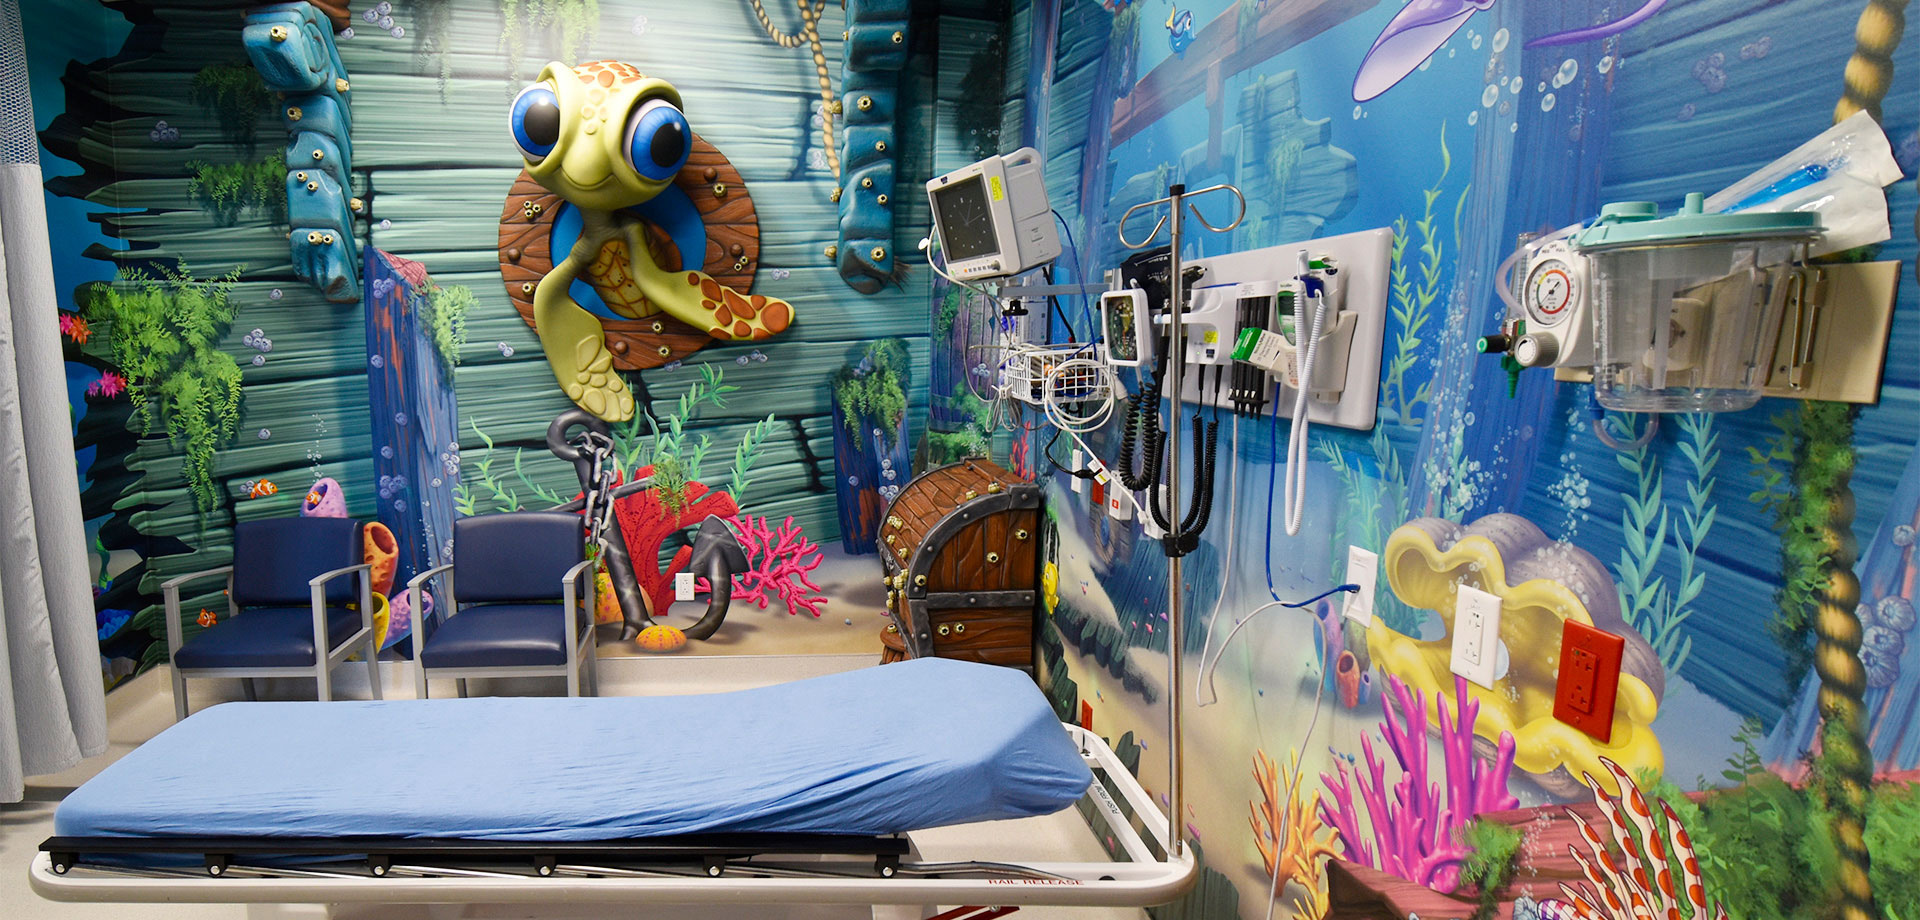 Undersea Themed Space at America's ER